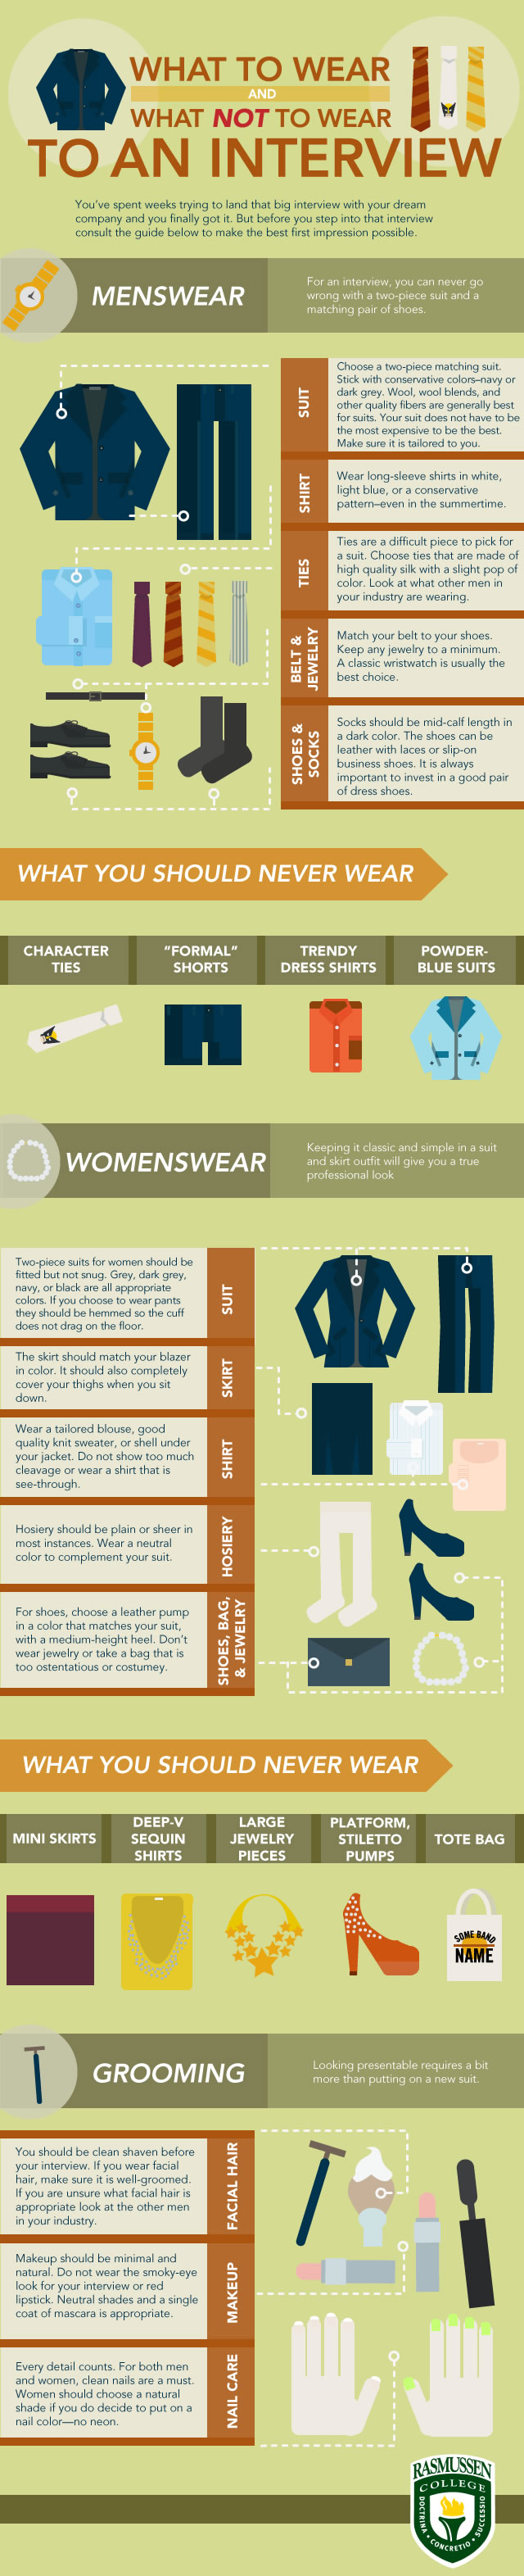 3. What to wear to an interview